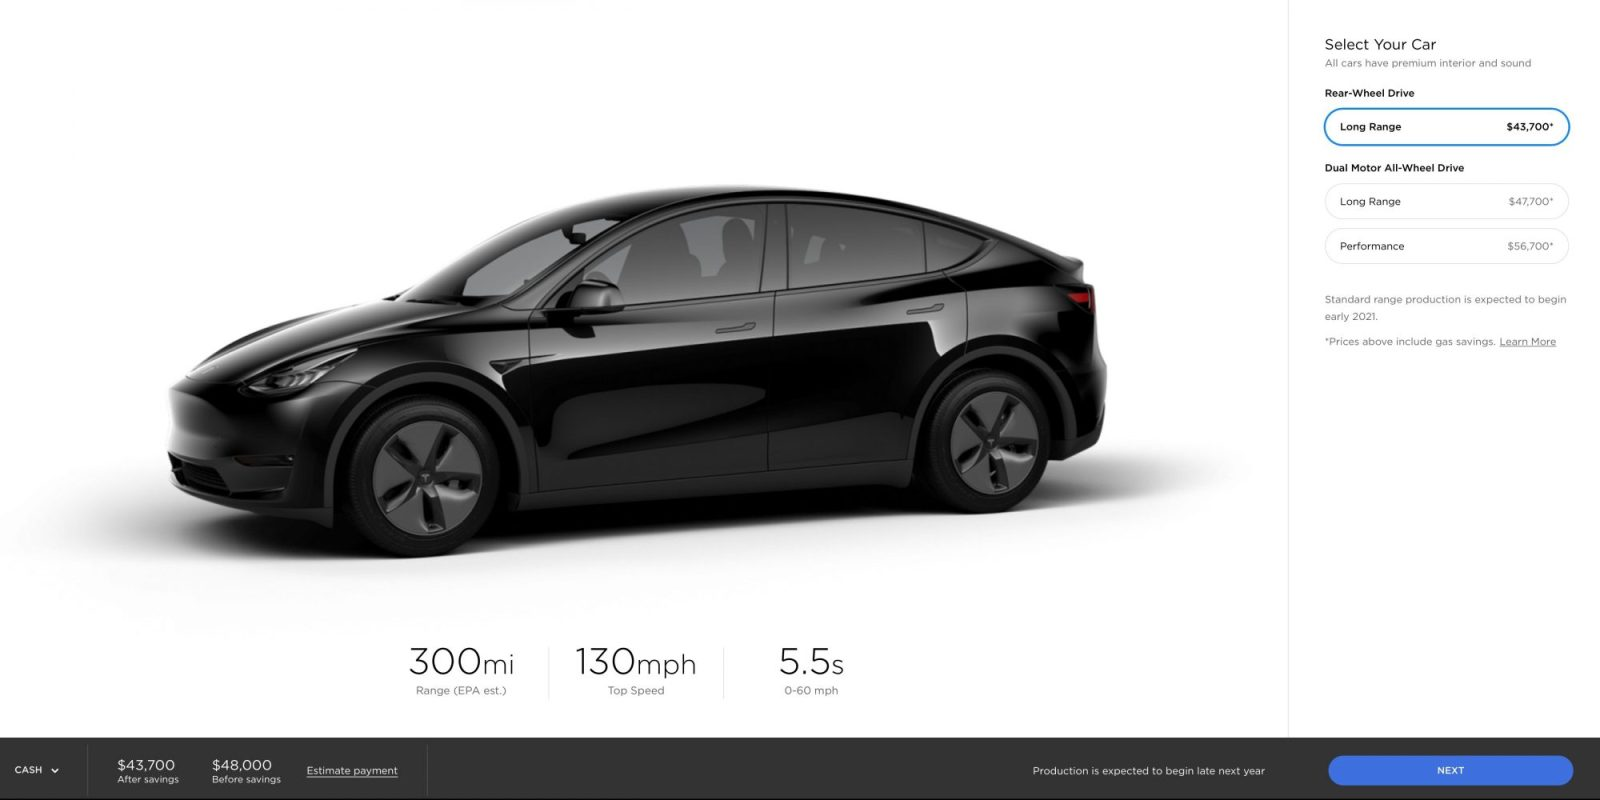 Tesla raises Model Y prices by $1k, will raise inventory car prices April 2